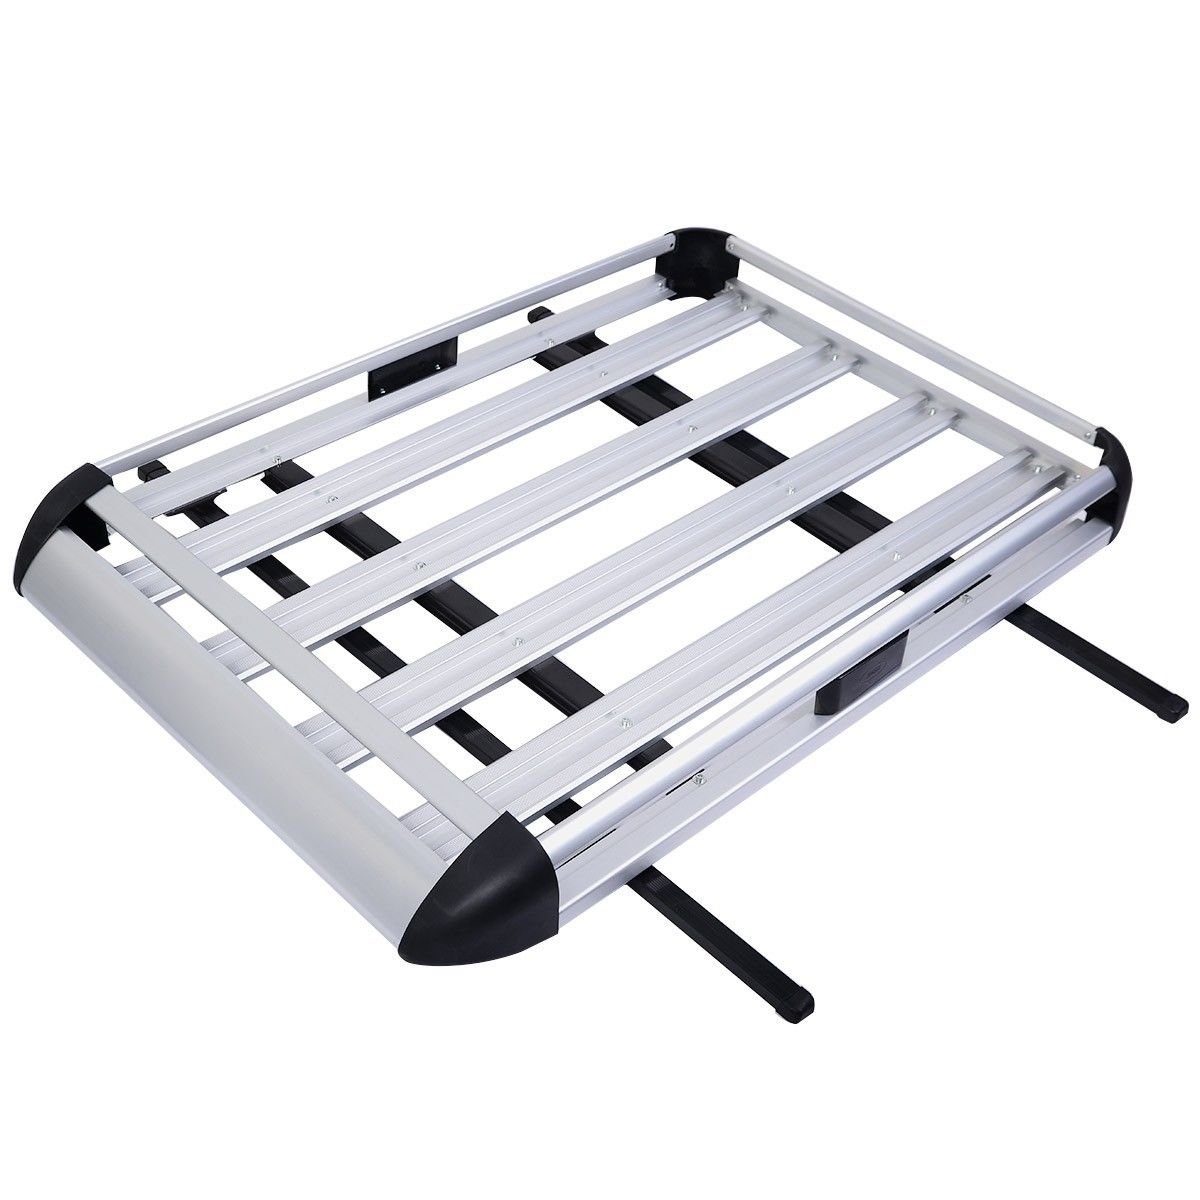 Edxtech 50''x38'' Aluminum Car Roof Cargo Carrier Luggage Basket Rack Top With Crossbars